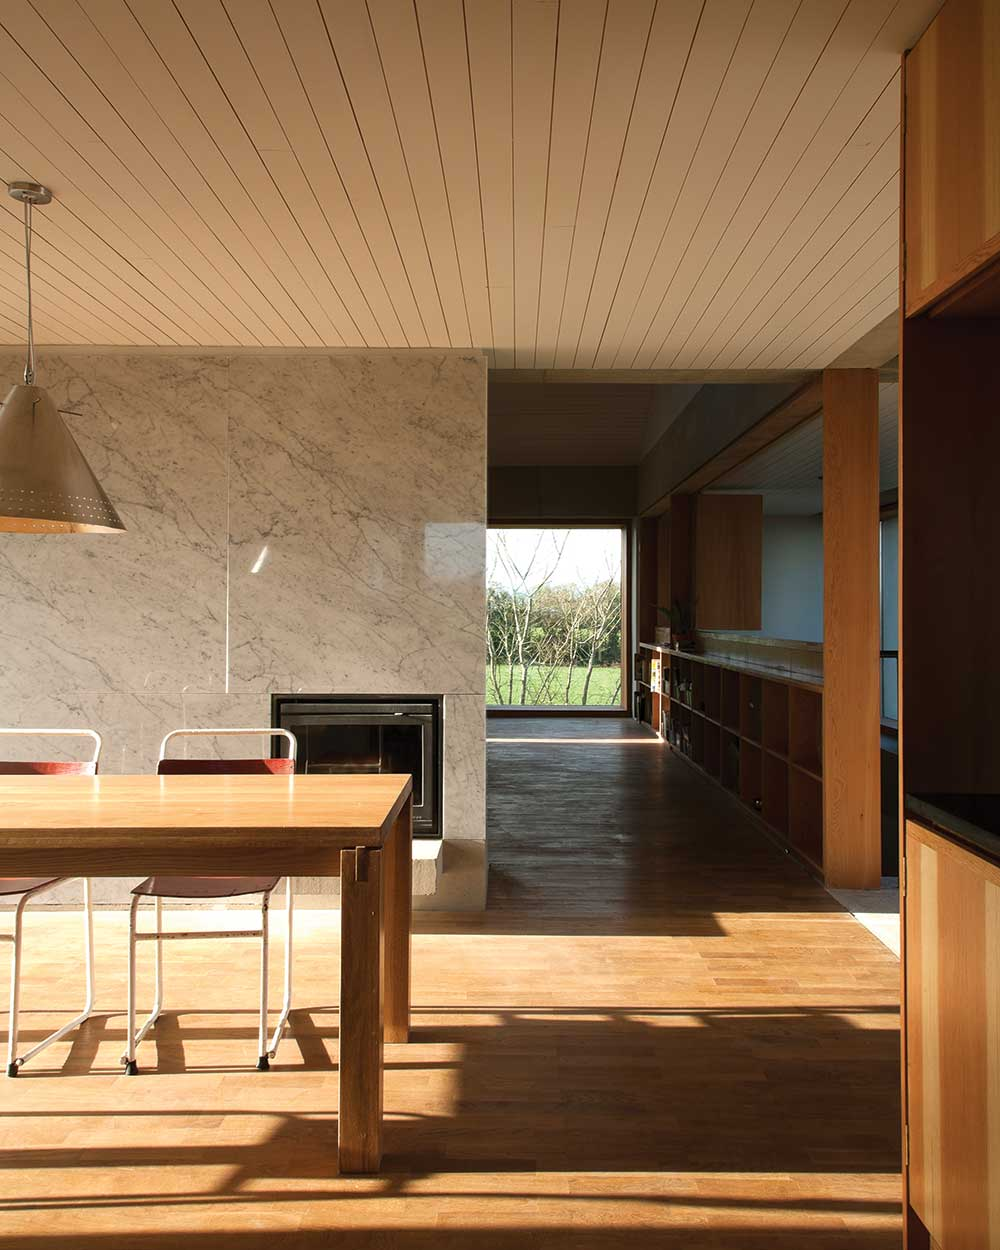 Design The Home Of Your Dreams: The Design Brief For Your Dream House